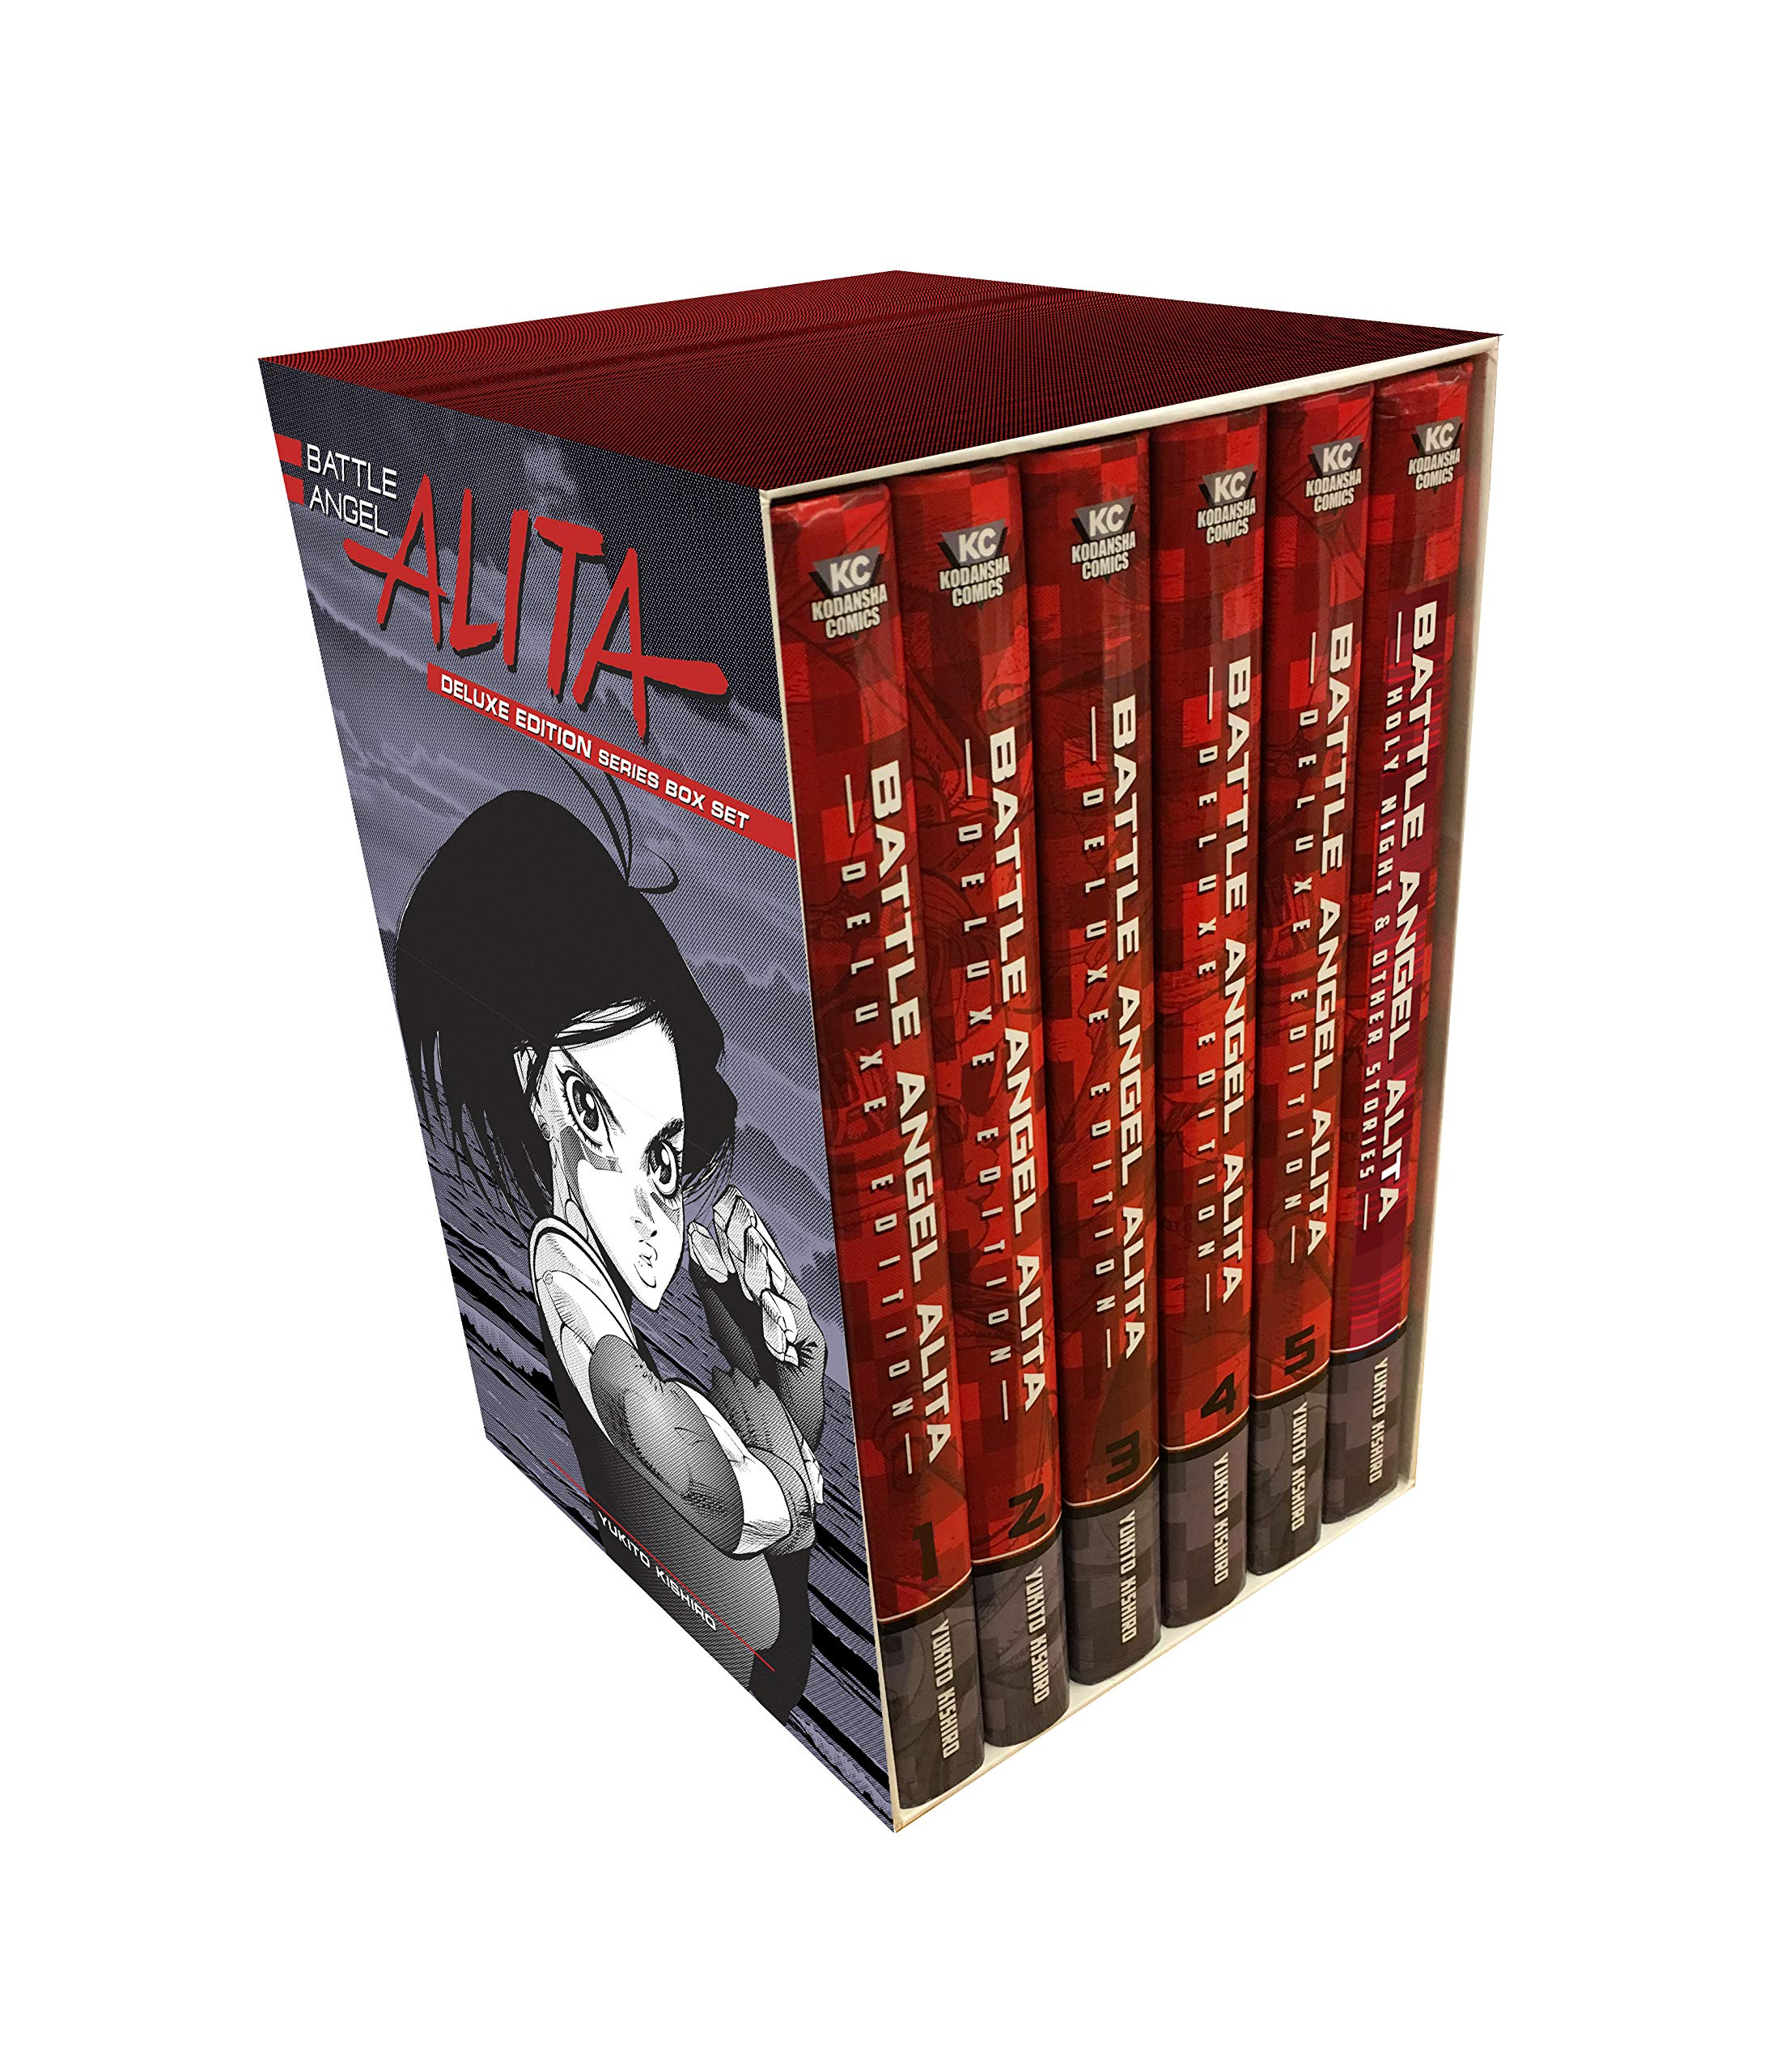 Battle Angel Alita Deluxe Edition Complete Series Manga Box Set (Hardcover)